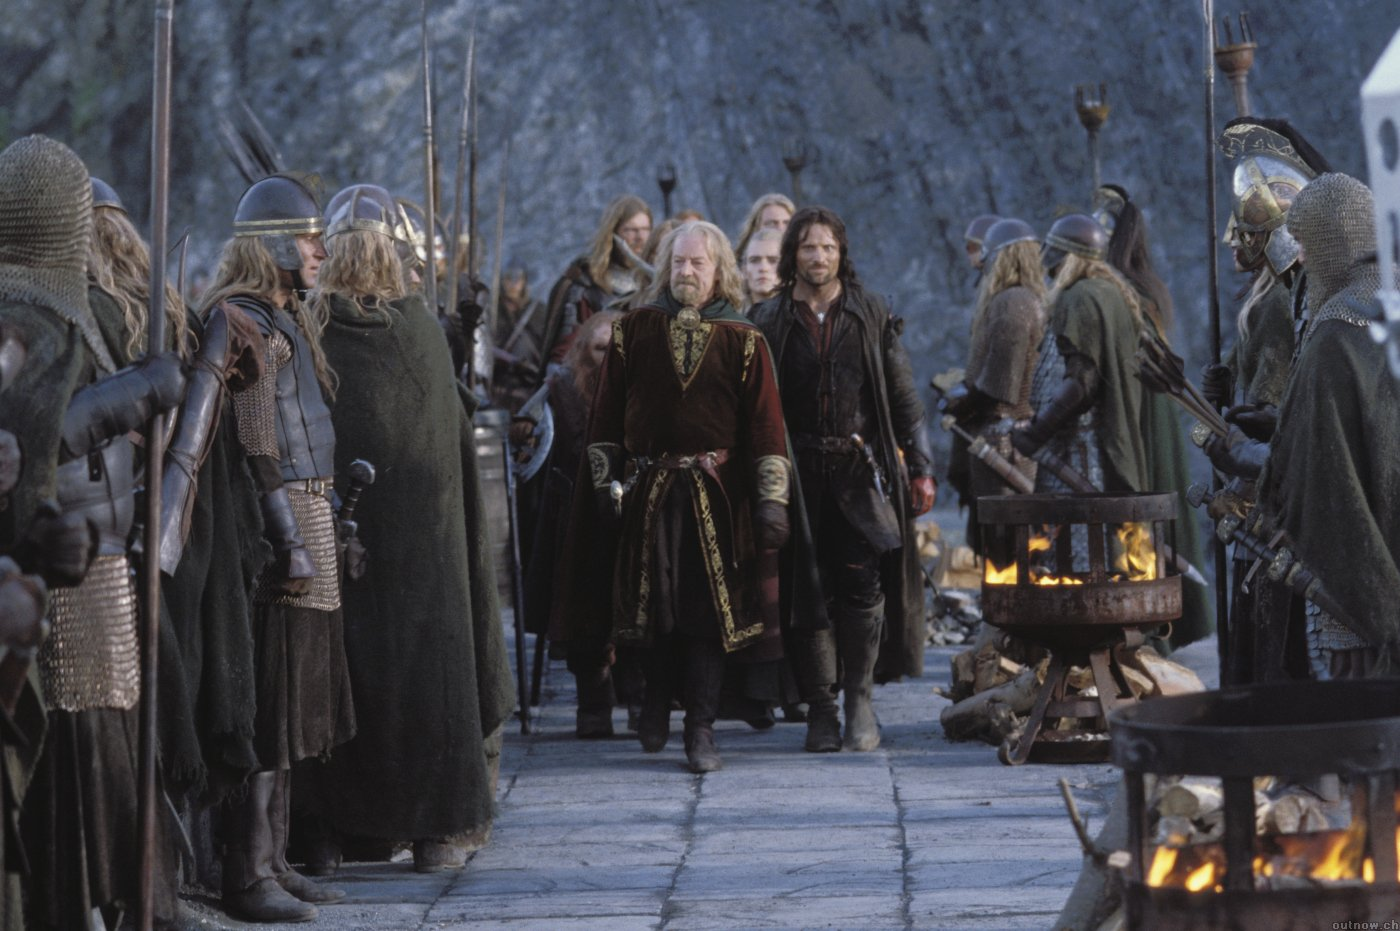 The Fellowship Of The Ring facts